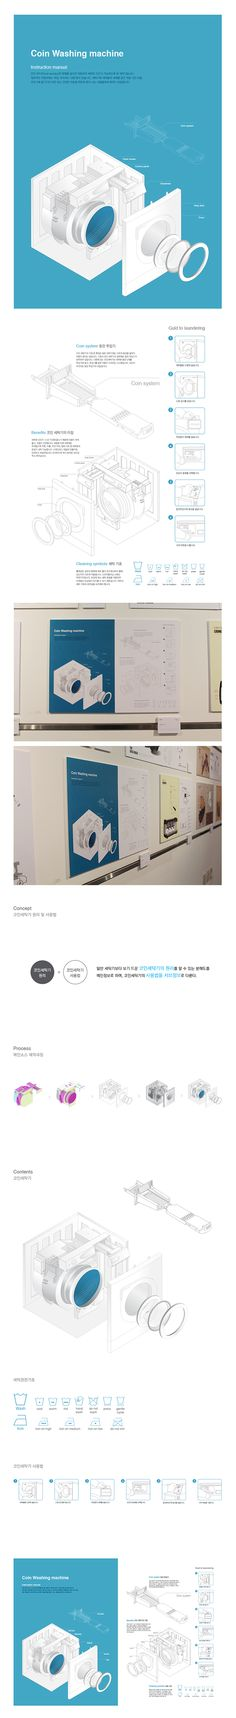 INFORMATION DESIGN_Instruction manual on Behance